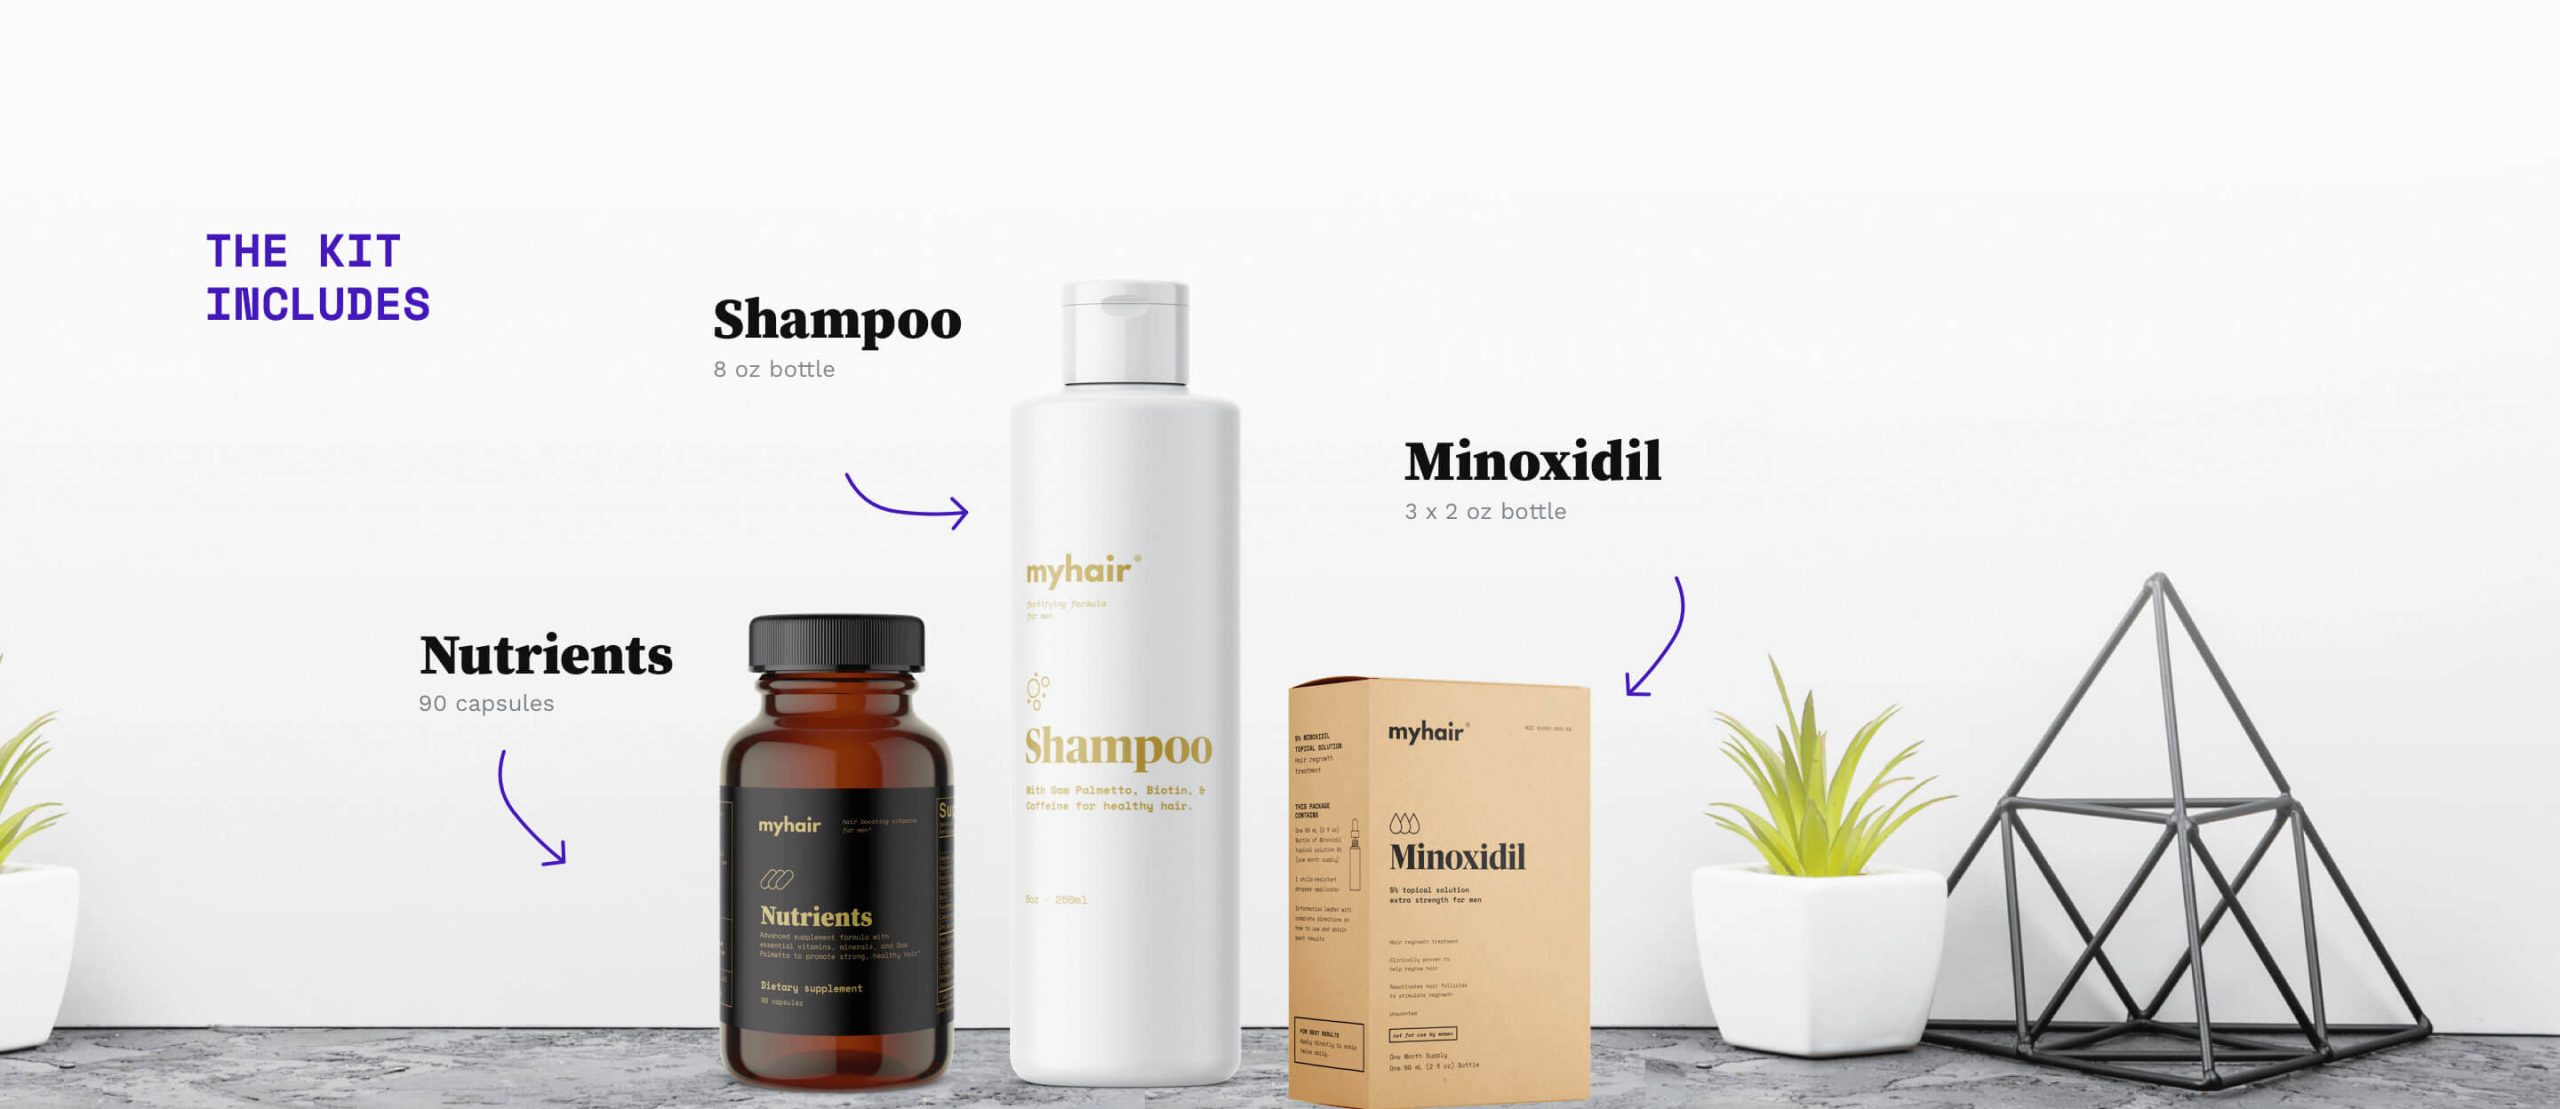 The Kit, showing an 8oz bottle of Shampoo, 90 capsule bottle of Nutrients, and three 2-ounce bottles of Minoxidil